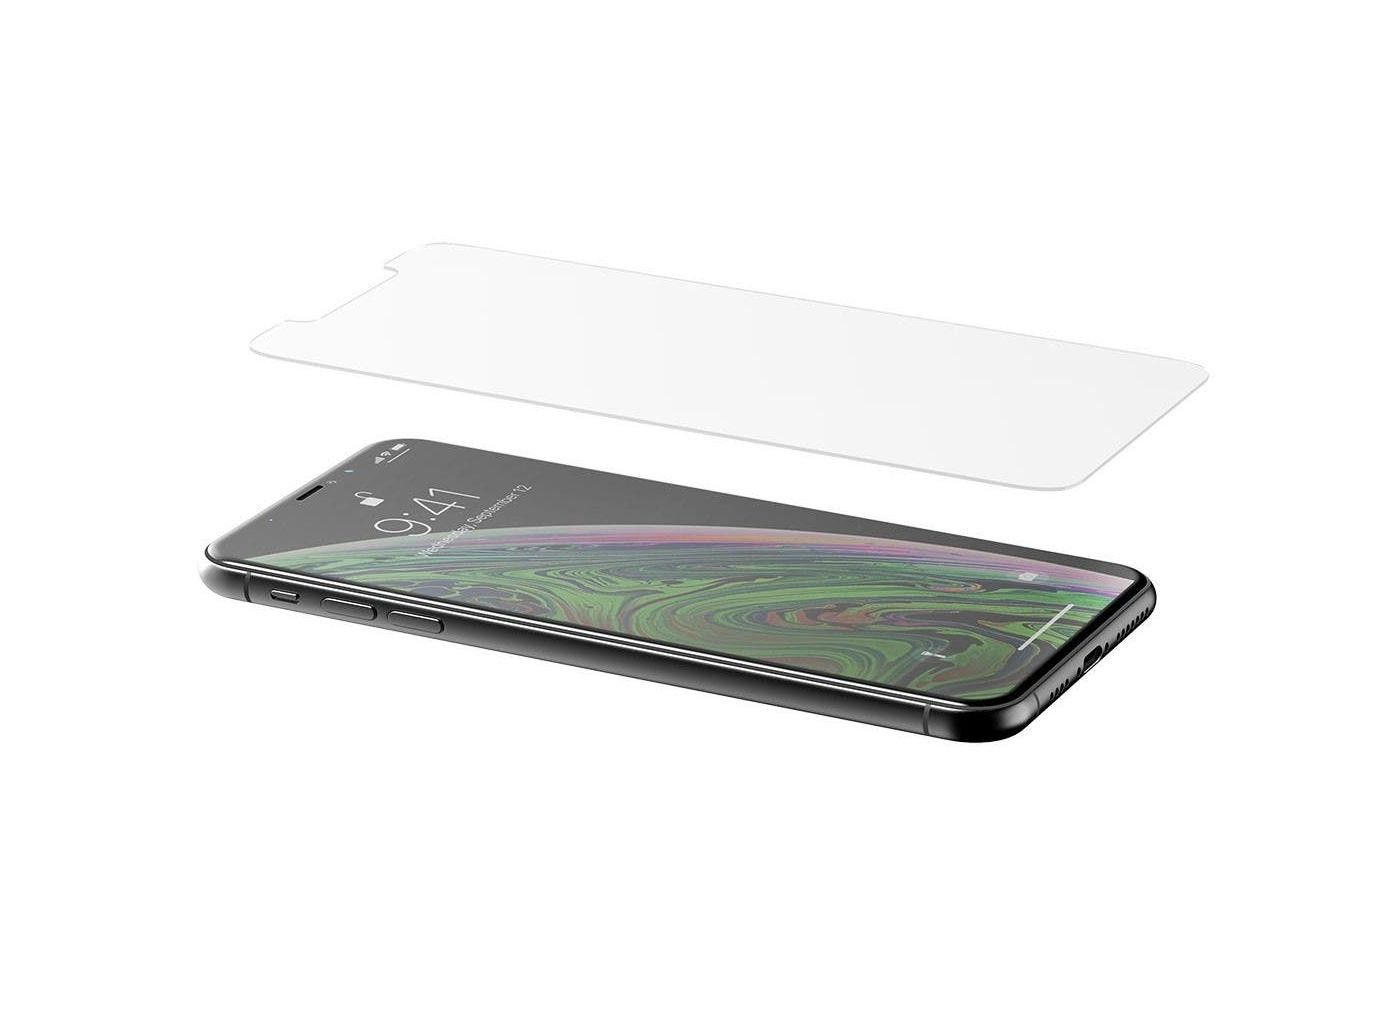 fcbed84c88dbdd279349762634d888db - Iphone Xs Screen Protector With Applicator